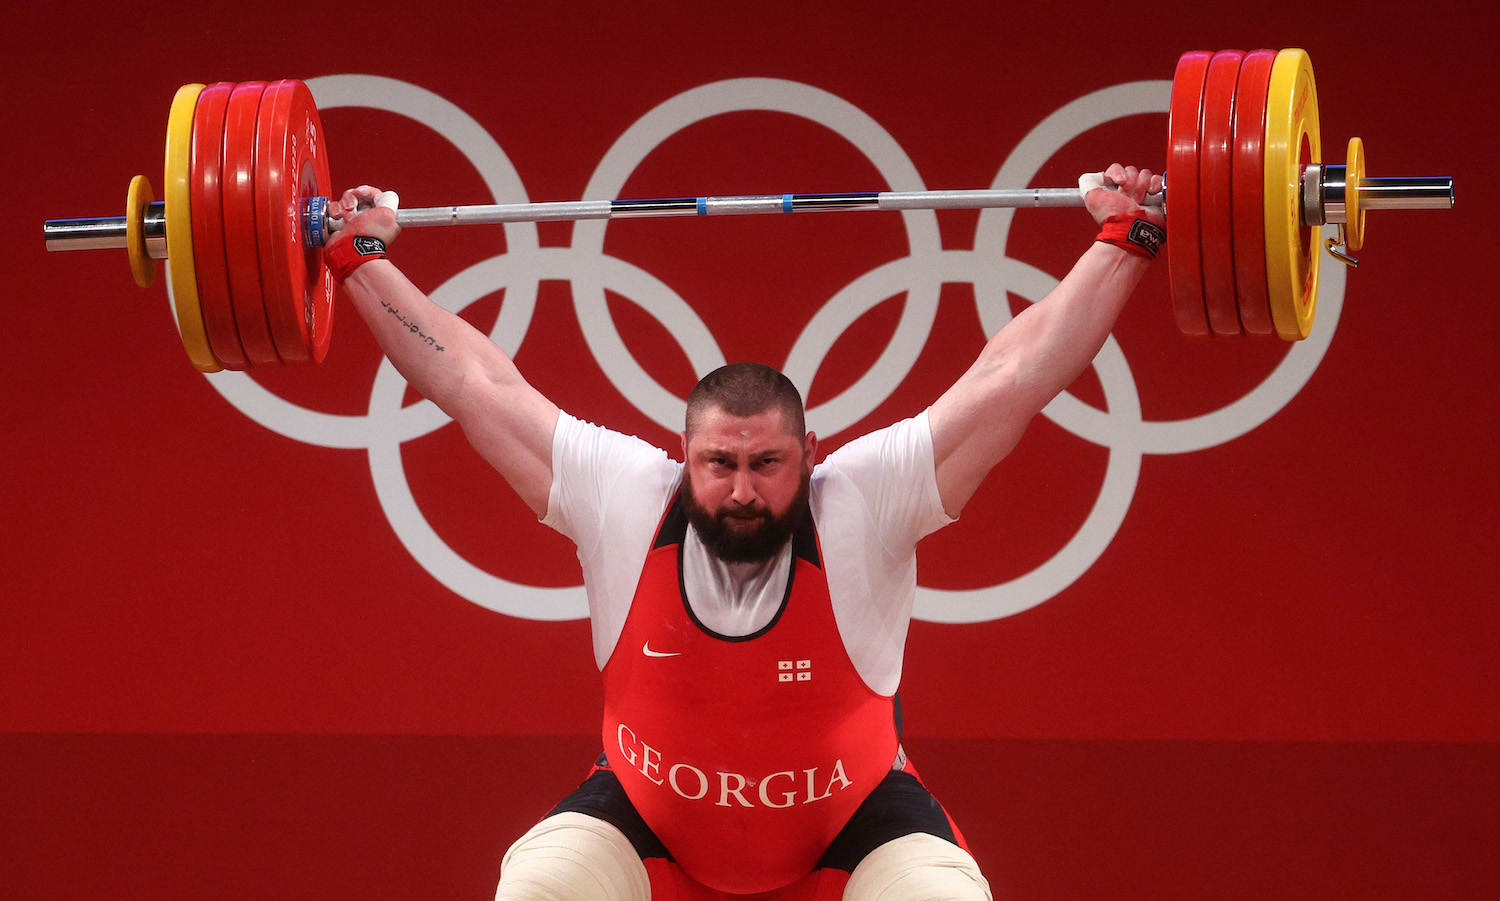 TOKYO, JAPAN - AUGUST 04: Lasha Talakhadze of Team Georgia competes during the Weightlifting - Men's 109kg+ Group A on day twelve of the Tokyo 2020 Olympic Games at Tokyo International Forum on August 04, 2021 in Tokyo, Japan. (Photo by Chris Graythen/Getty Images)